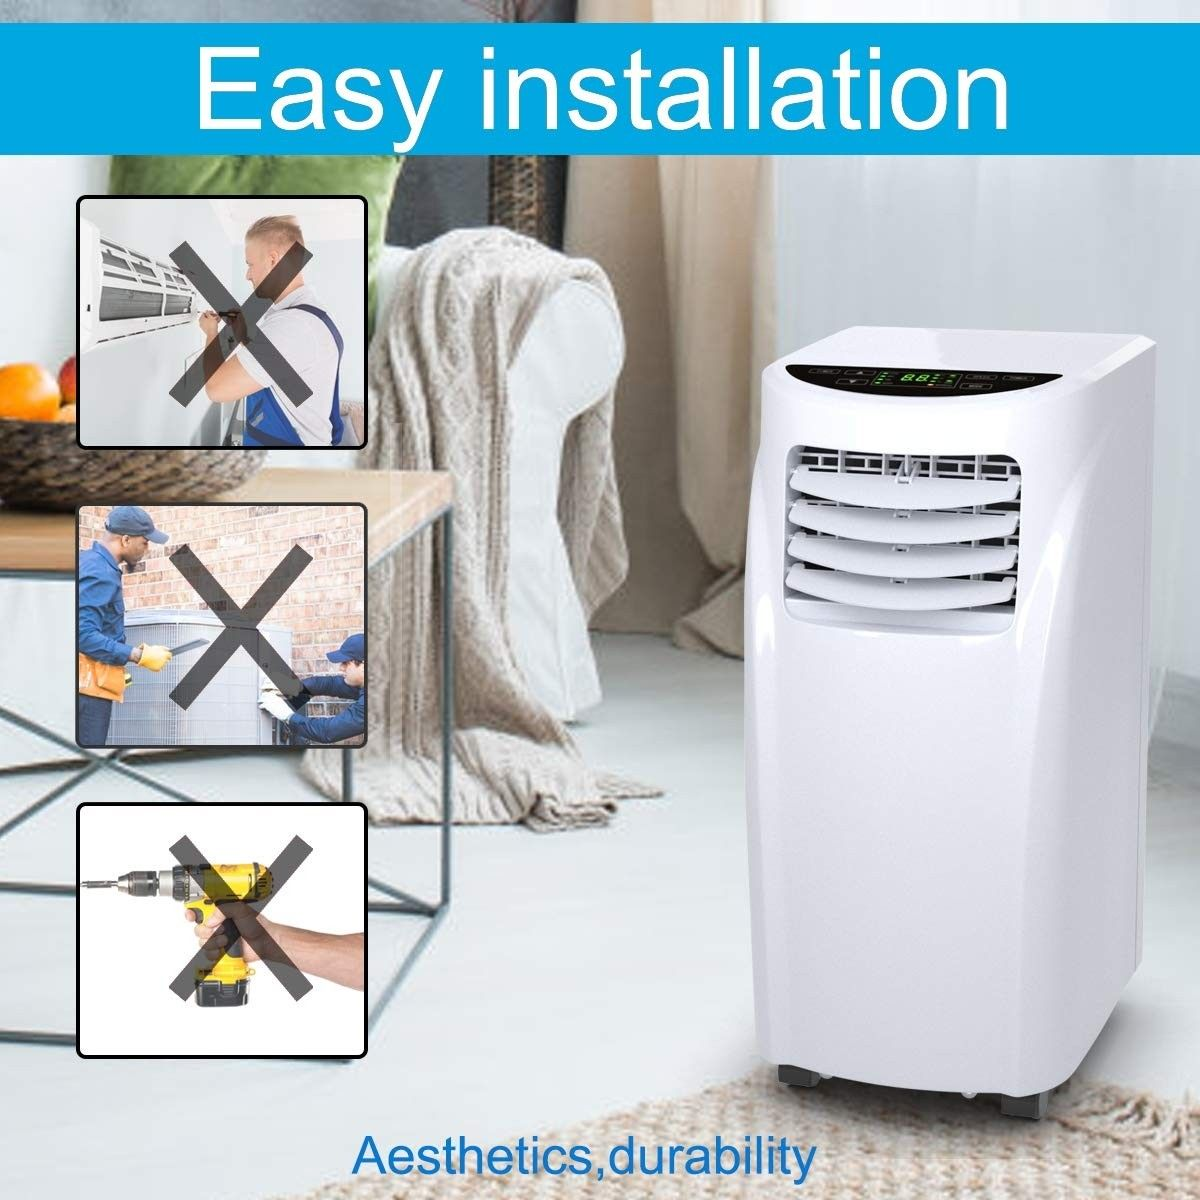 8 000 Btu Portable Air Conditioner Dehumidifier Portable Air Conditioner Dehumidifiers Air Conditioner Units